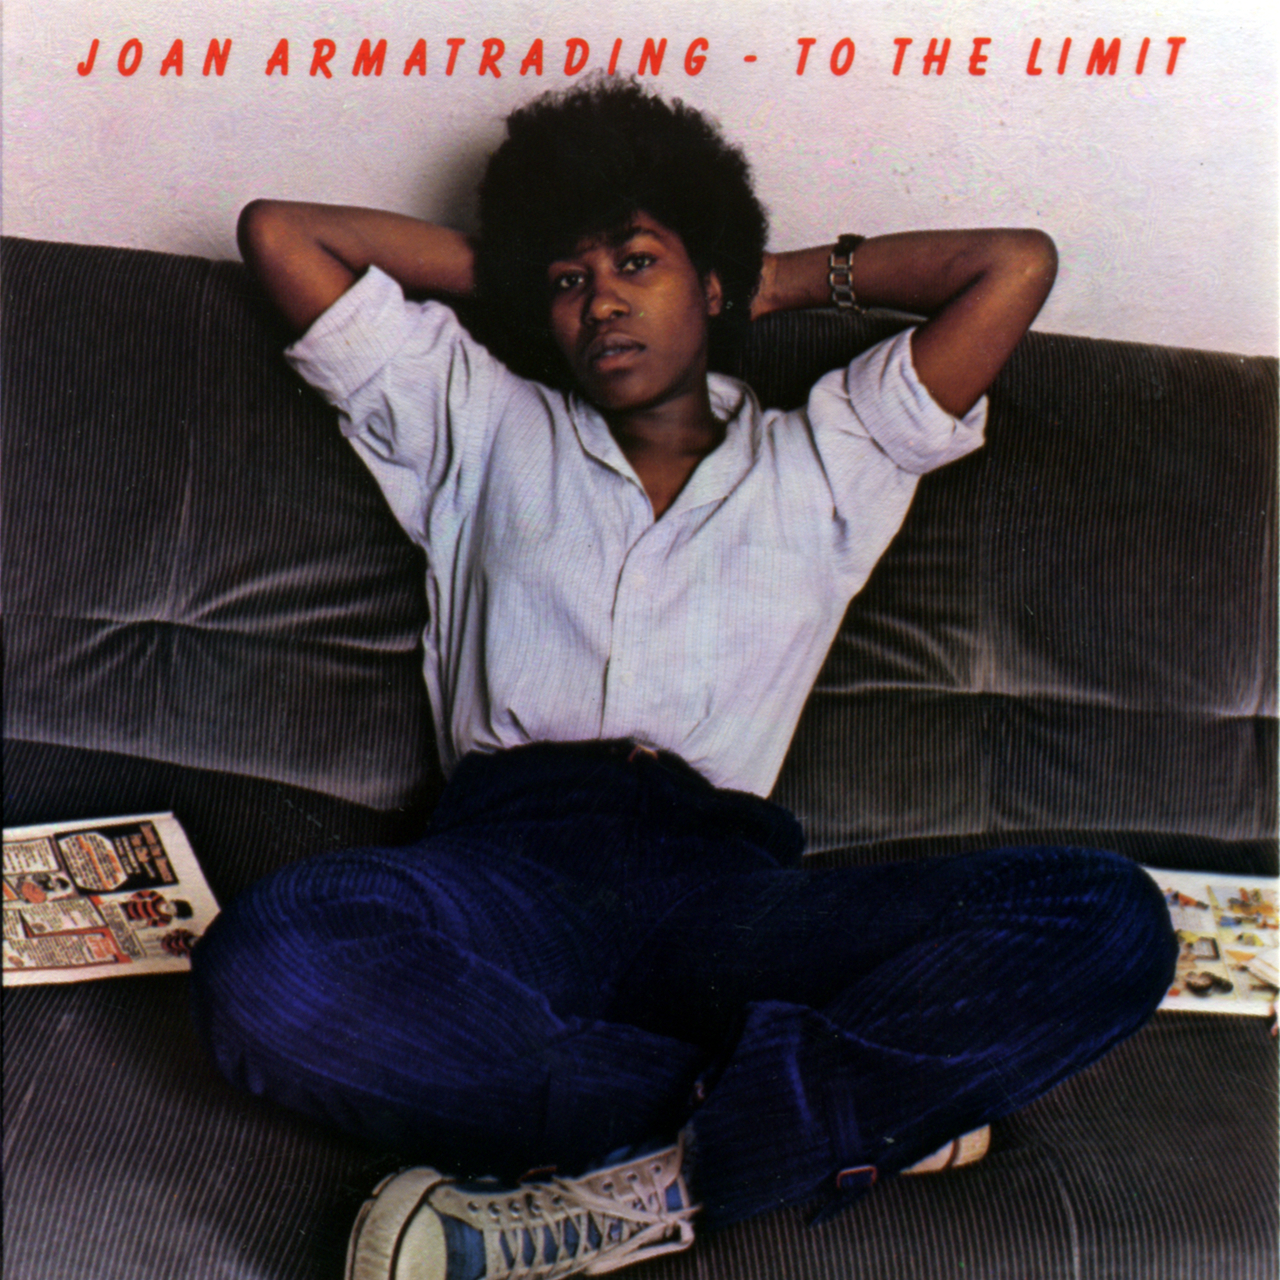 Armatrading, Joan To The Limit